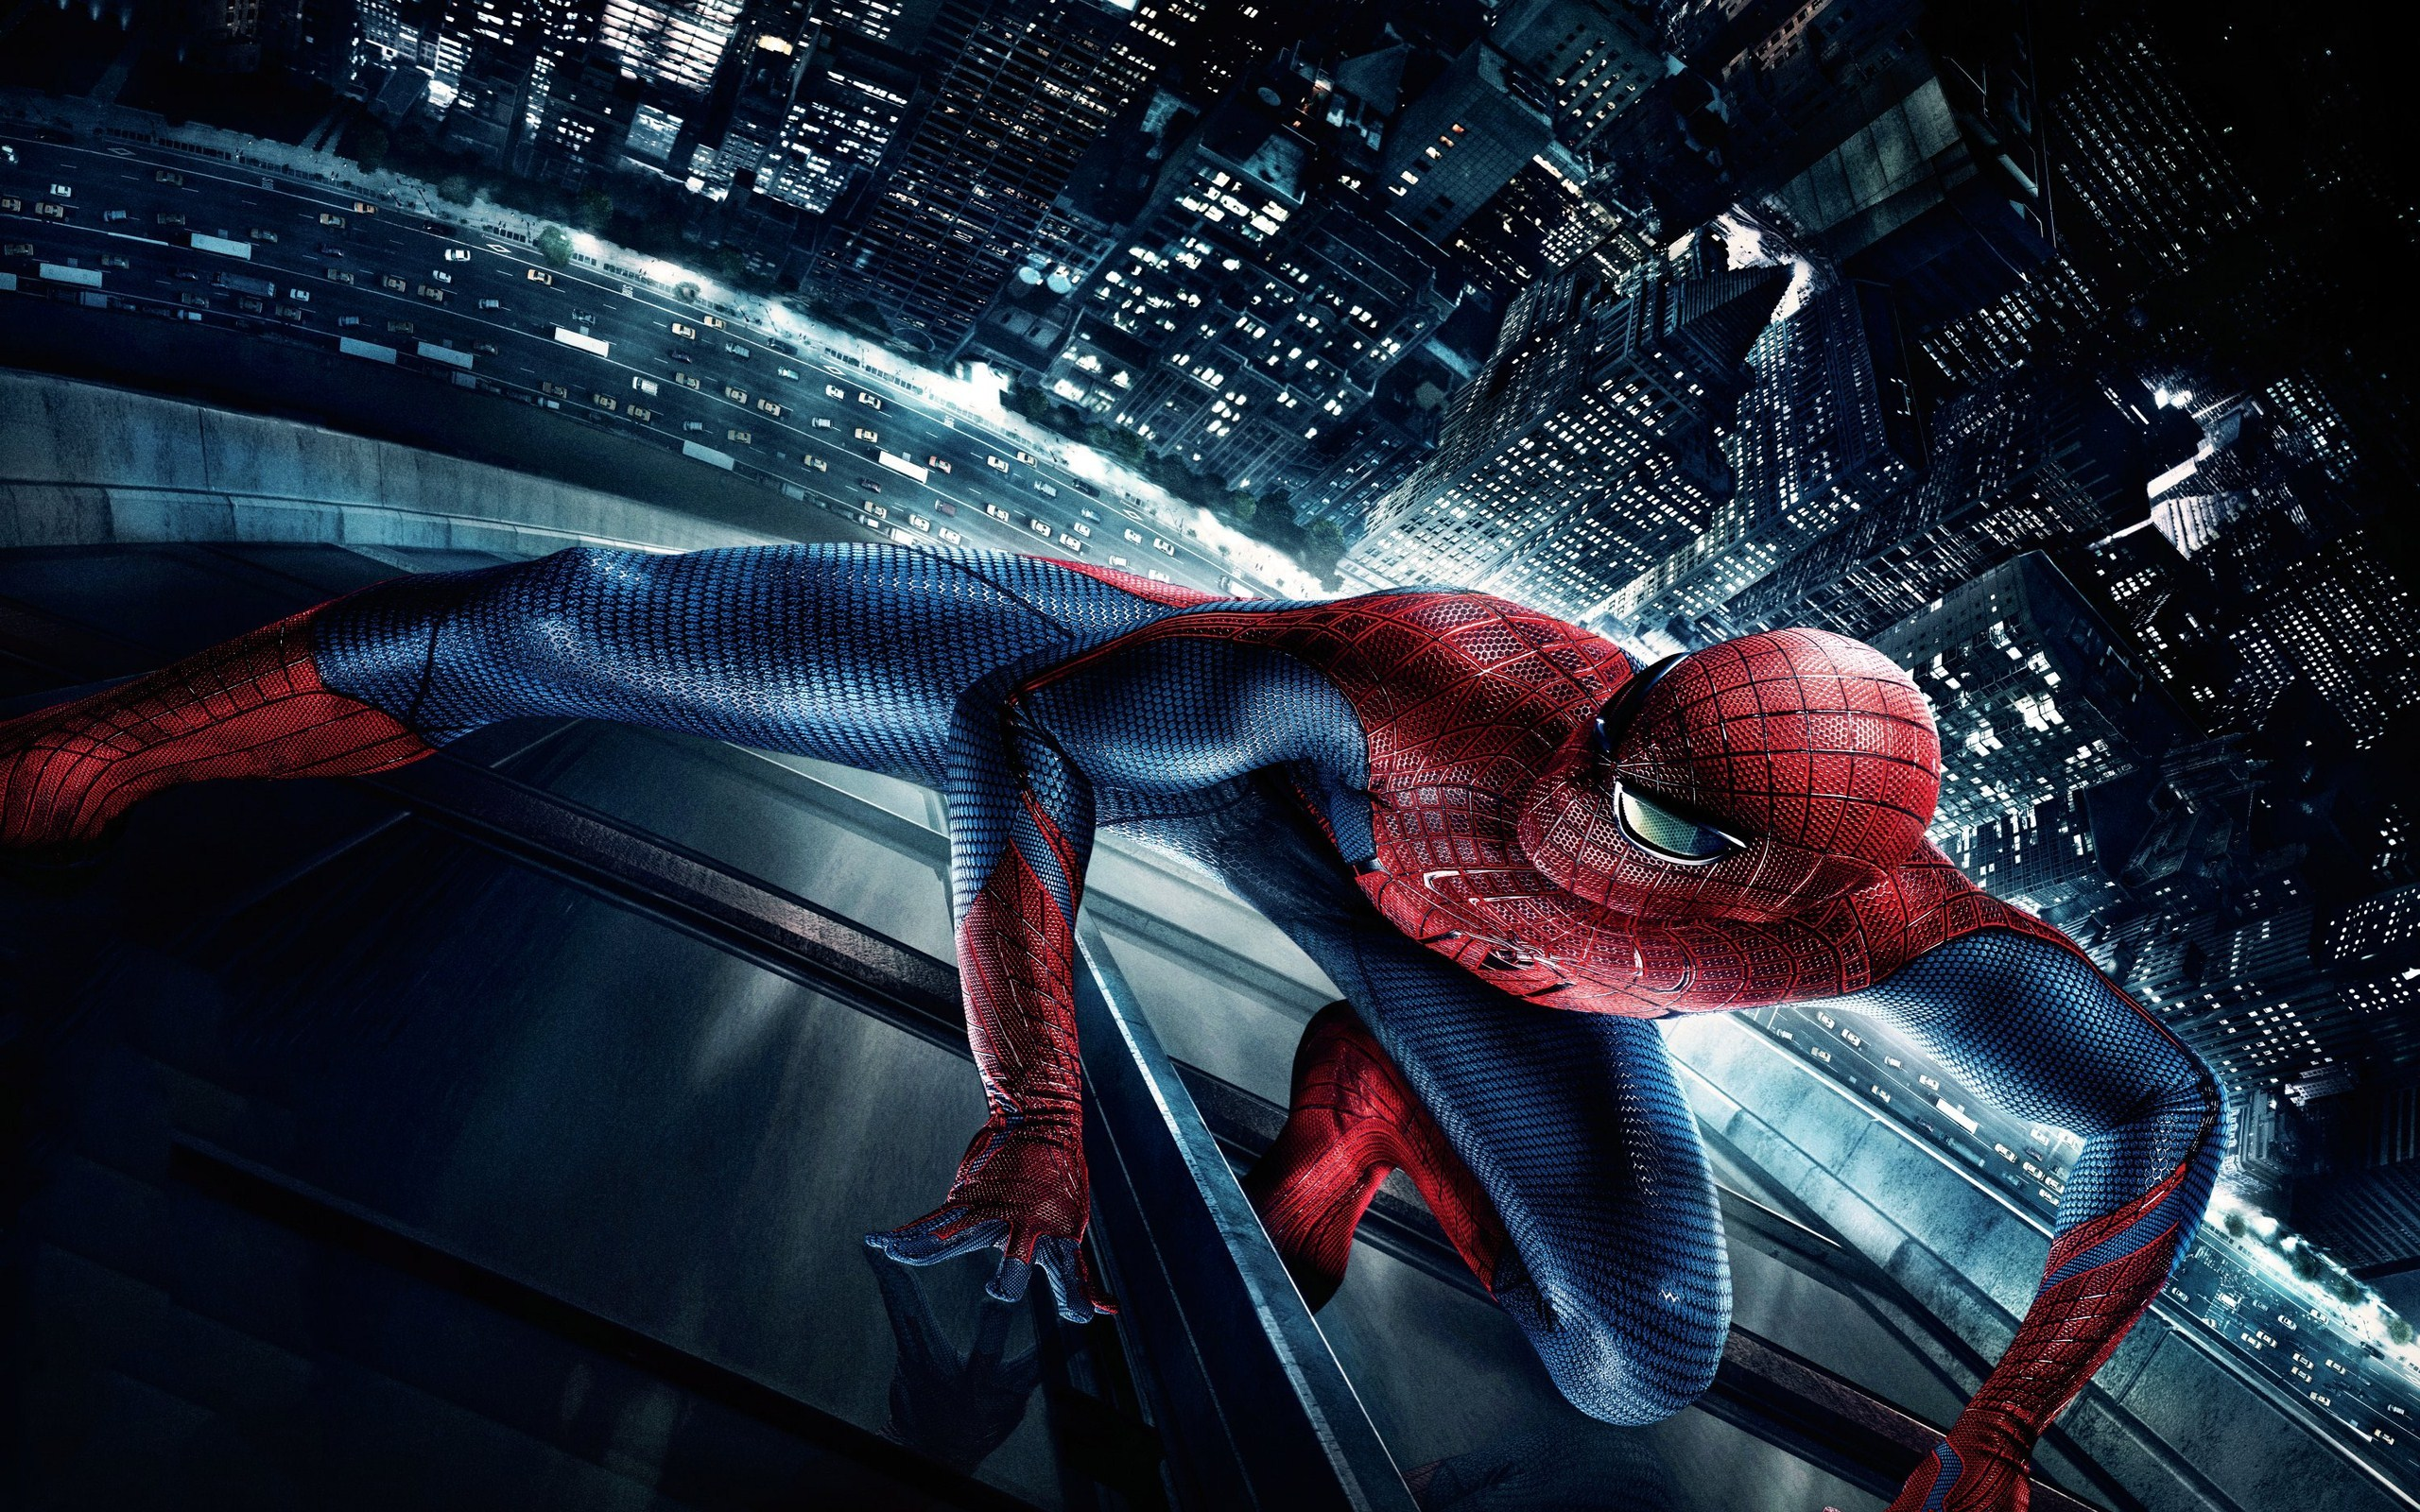 Spider man hd wallpapers for desktop download for Decorators best wallpaper